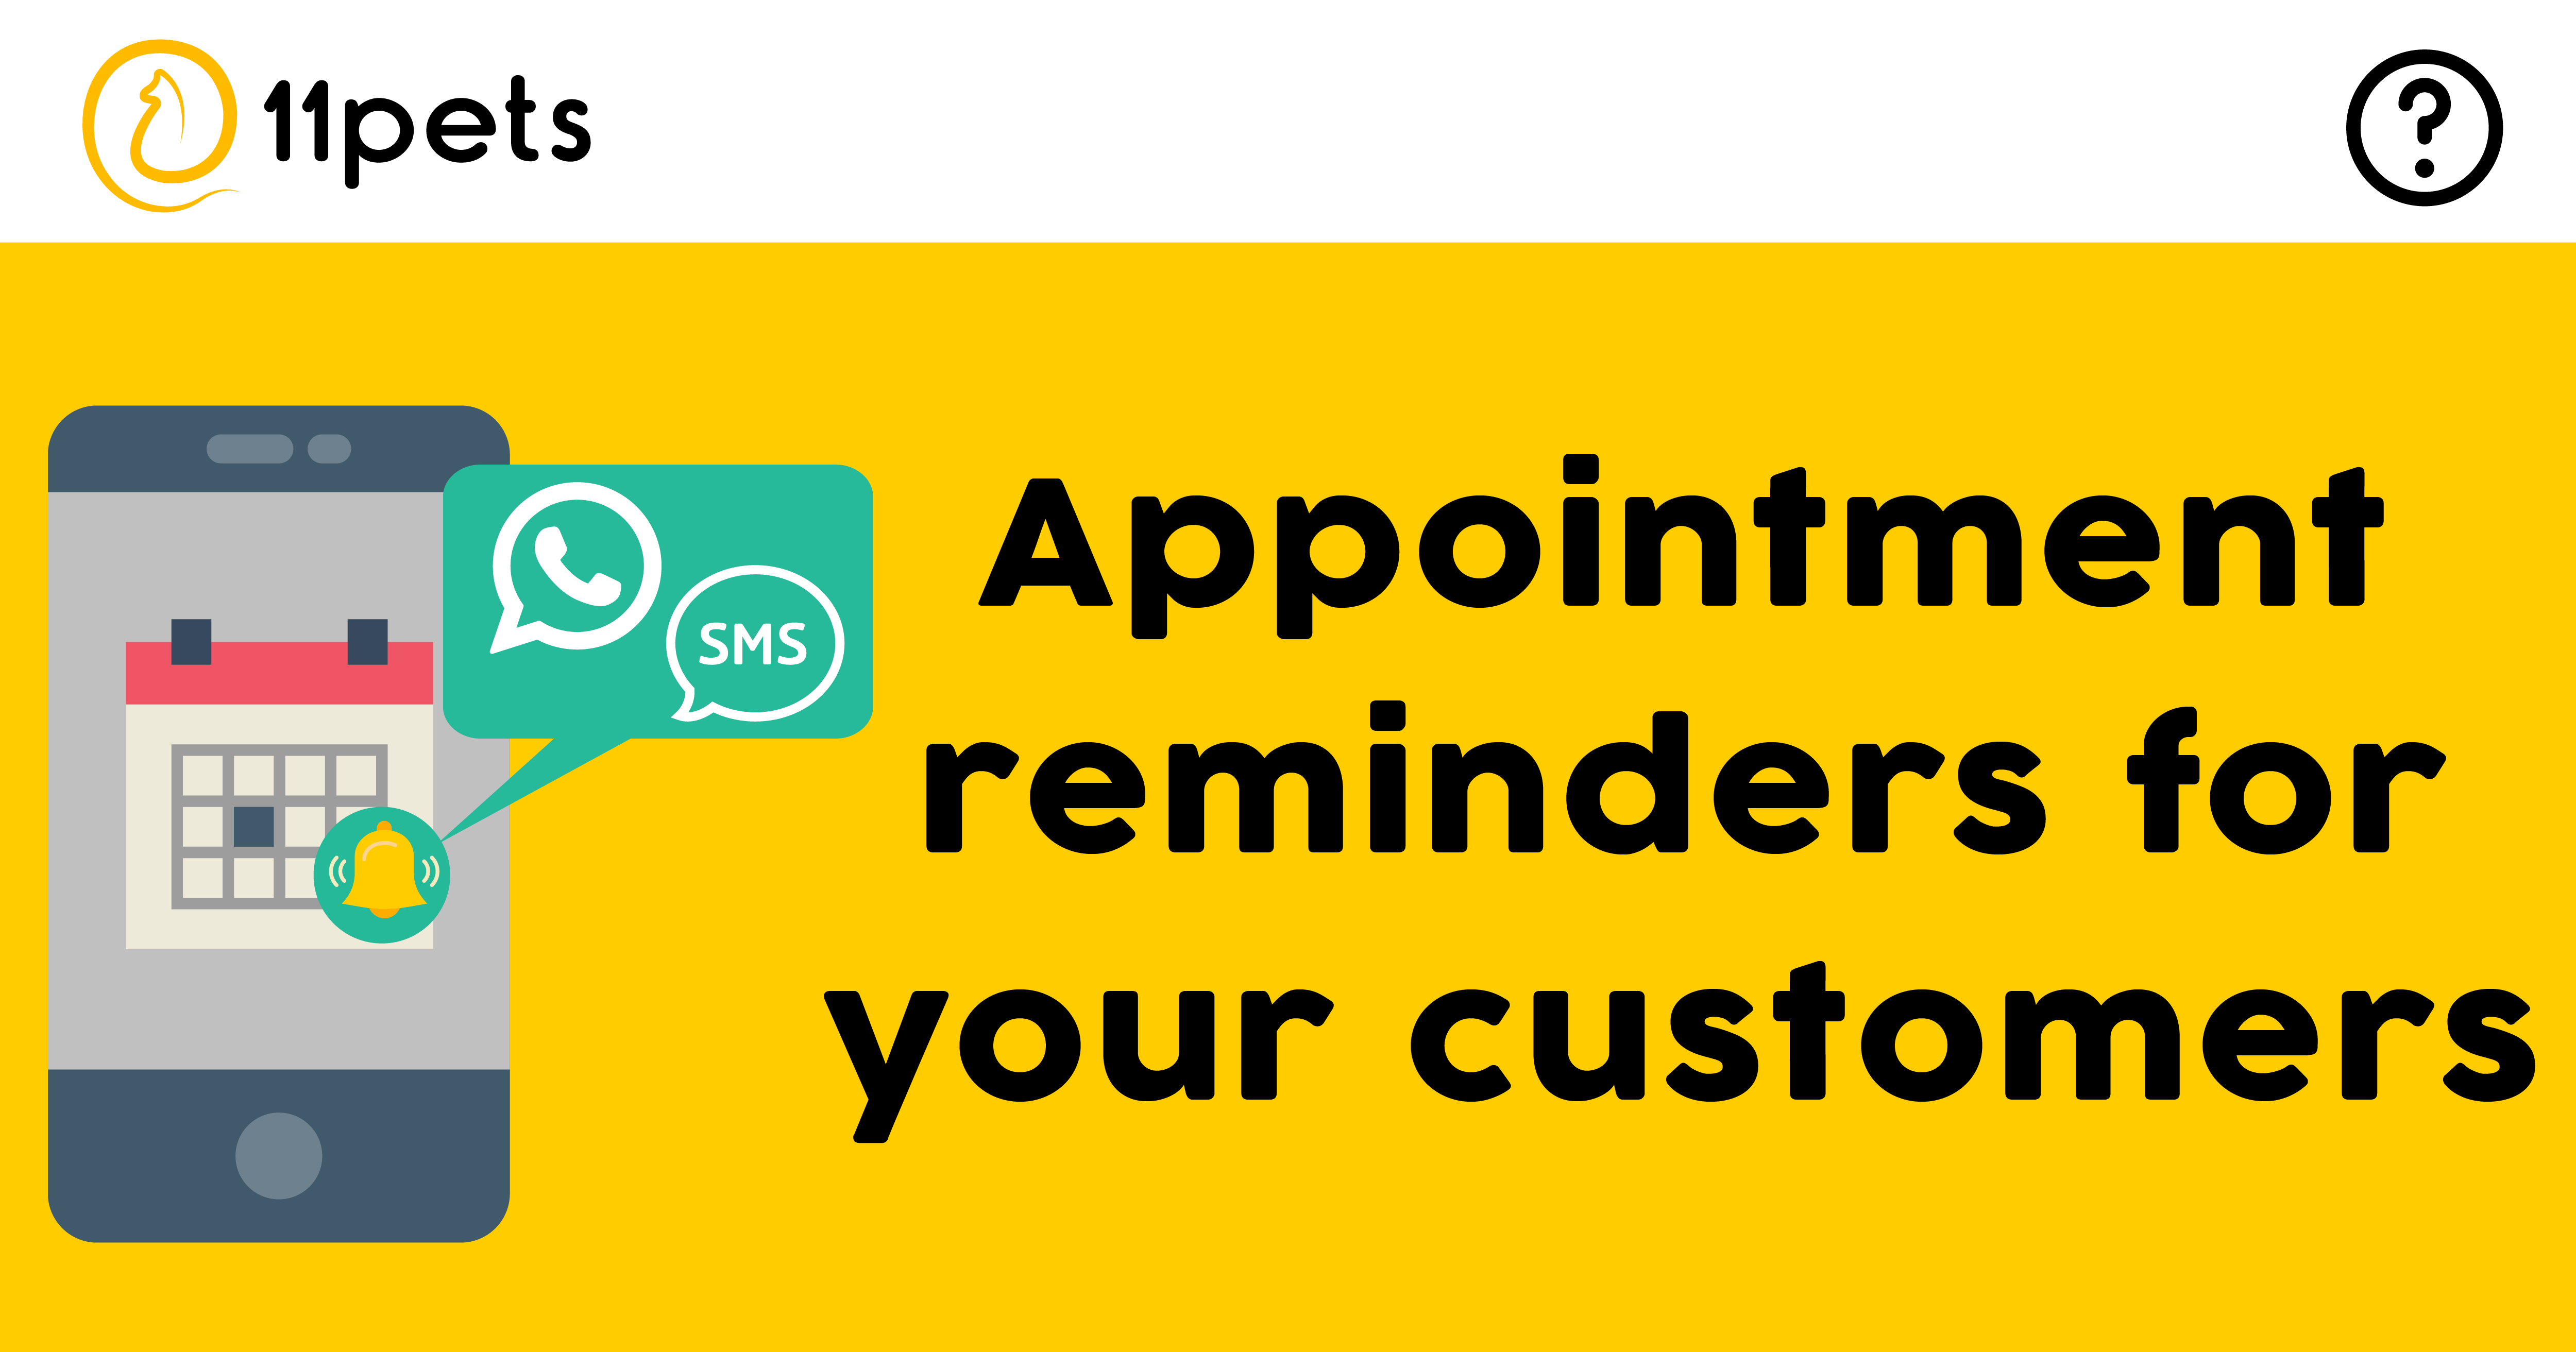 Reminders for the appointments of your customers